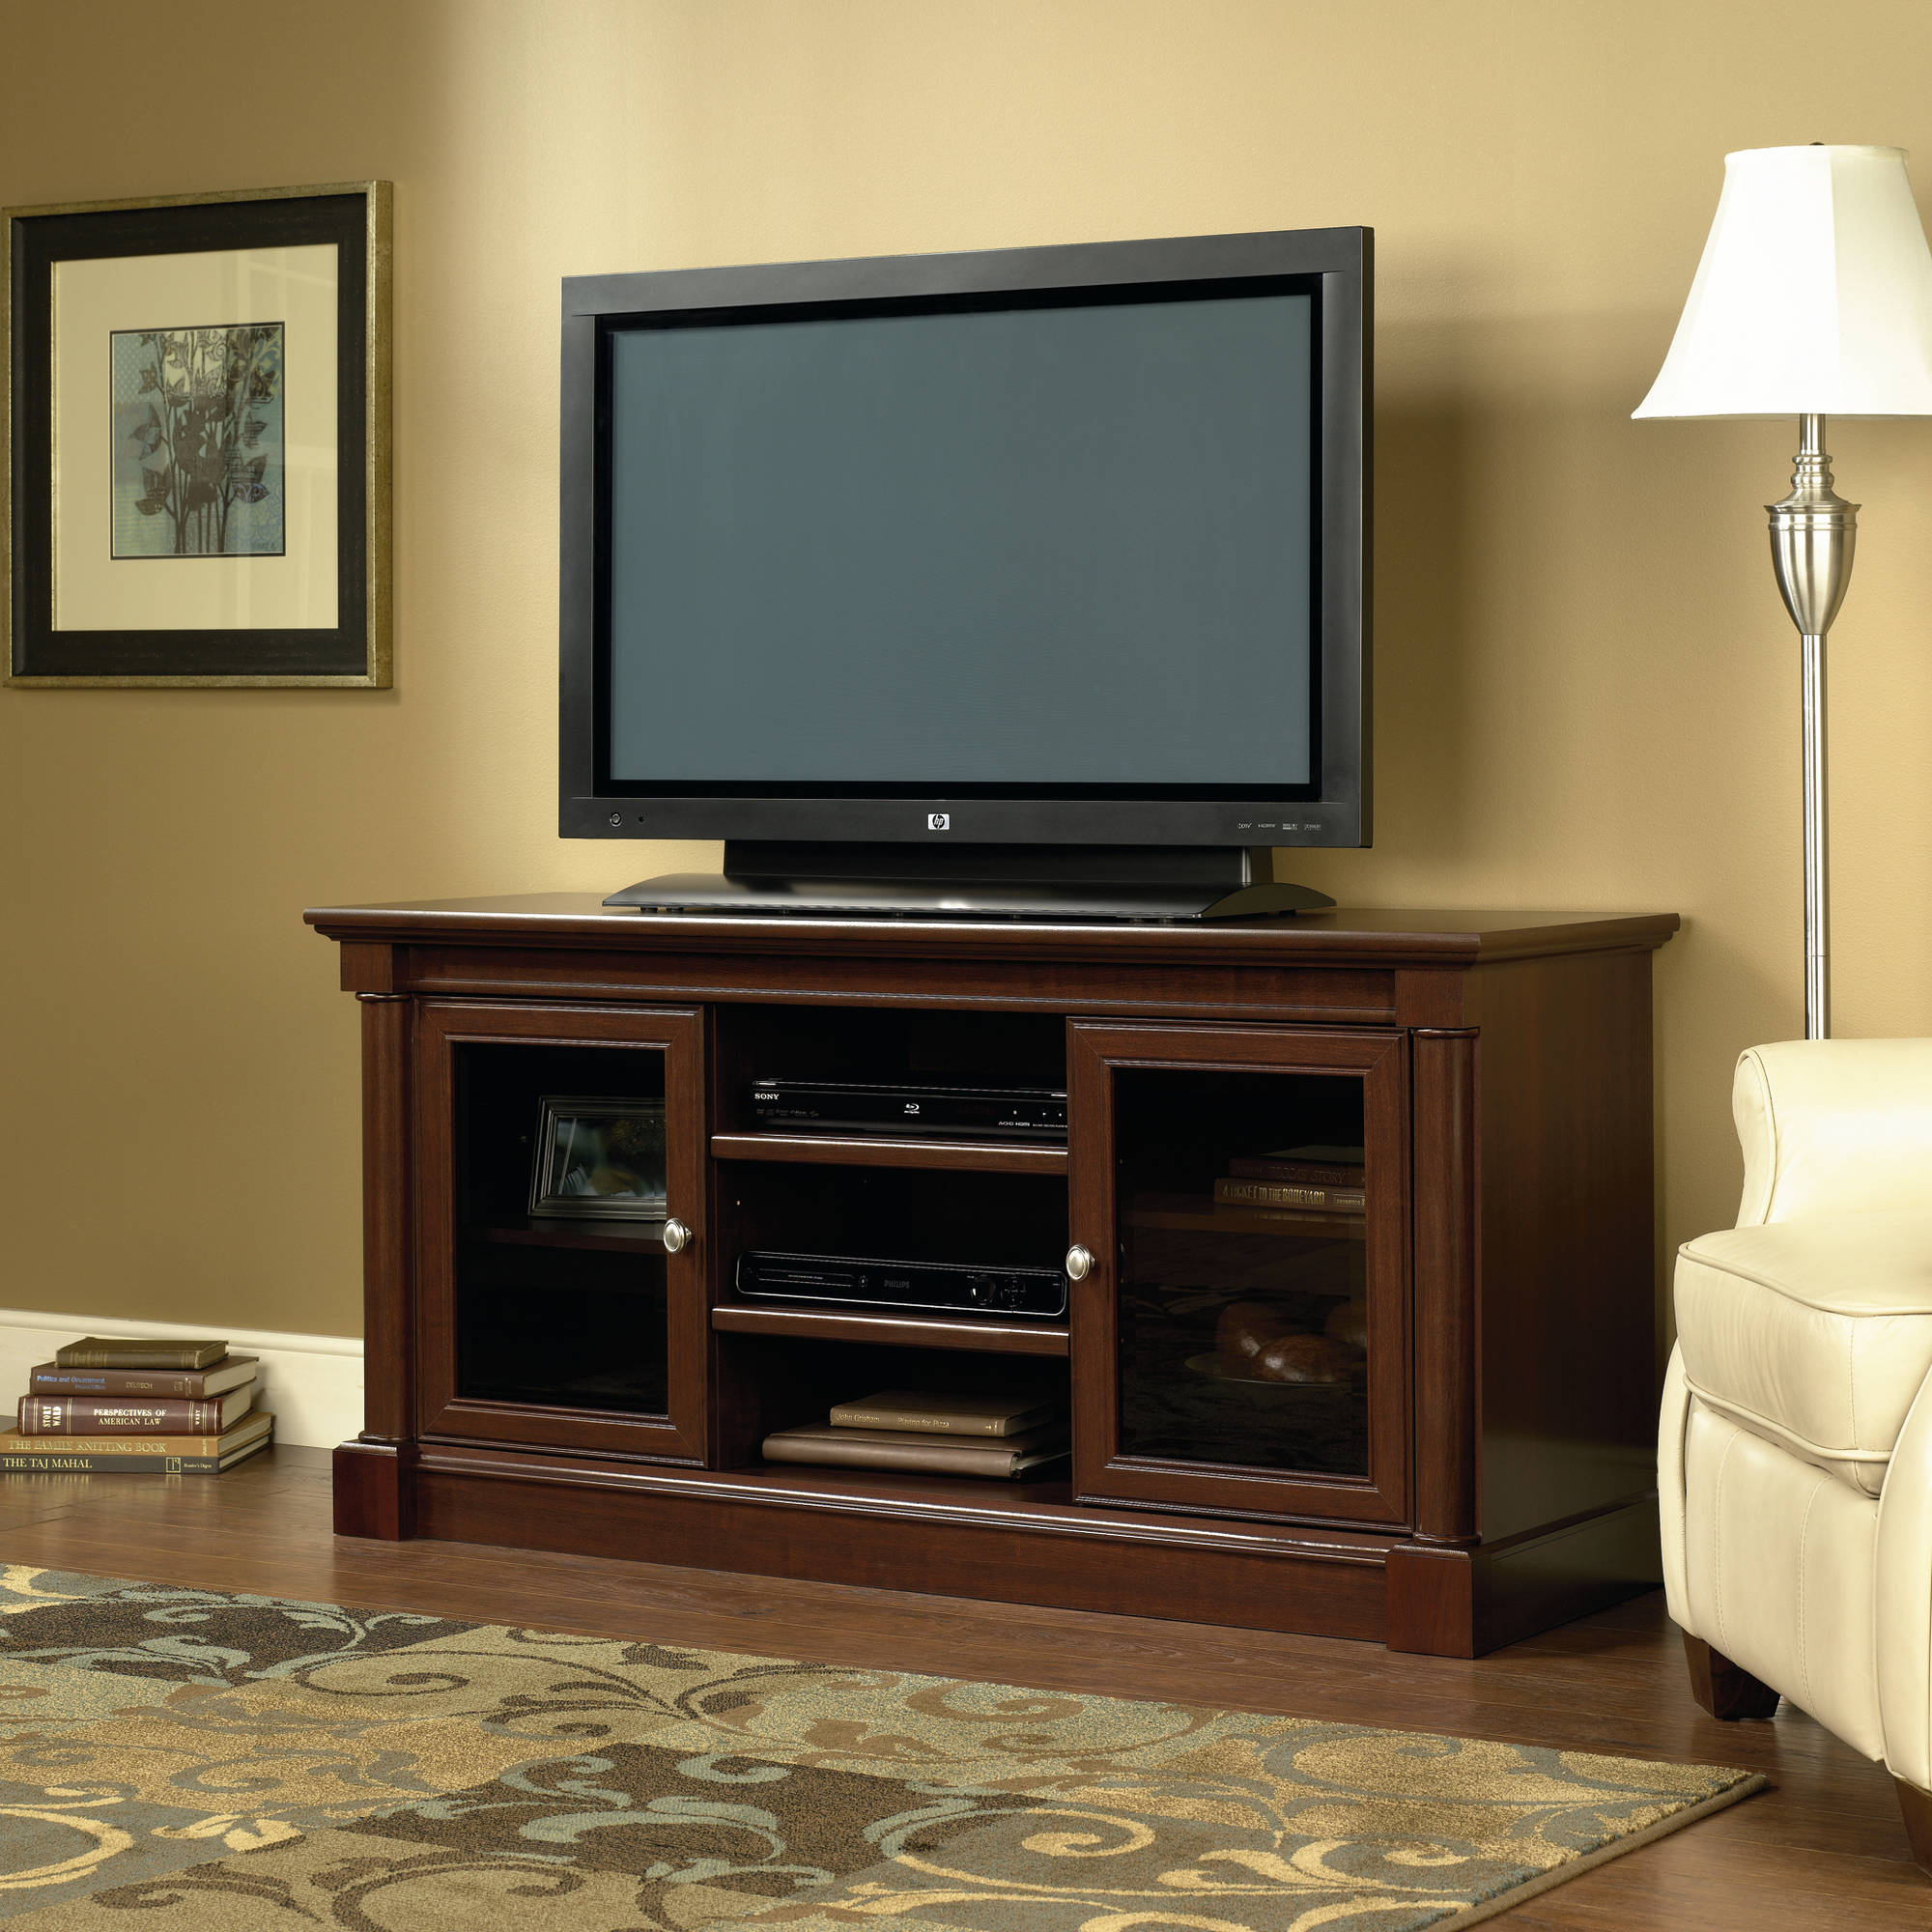 Sauder Palladia Entertainment Credenza For Tvs Up To 59 Cherry